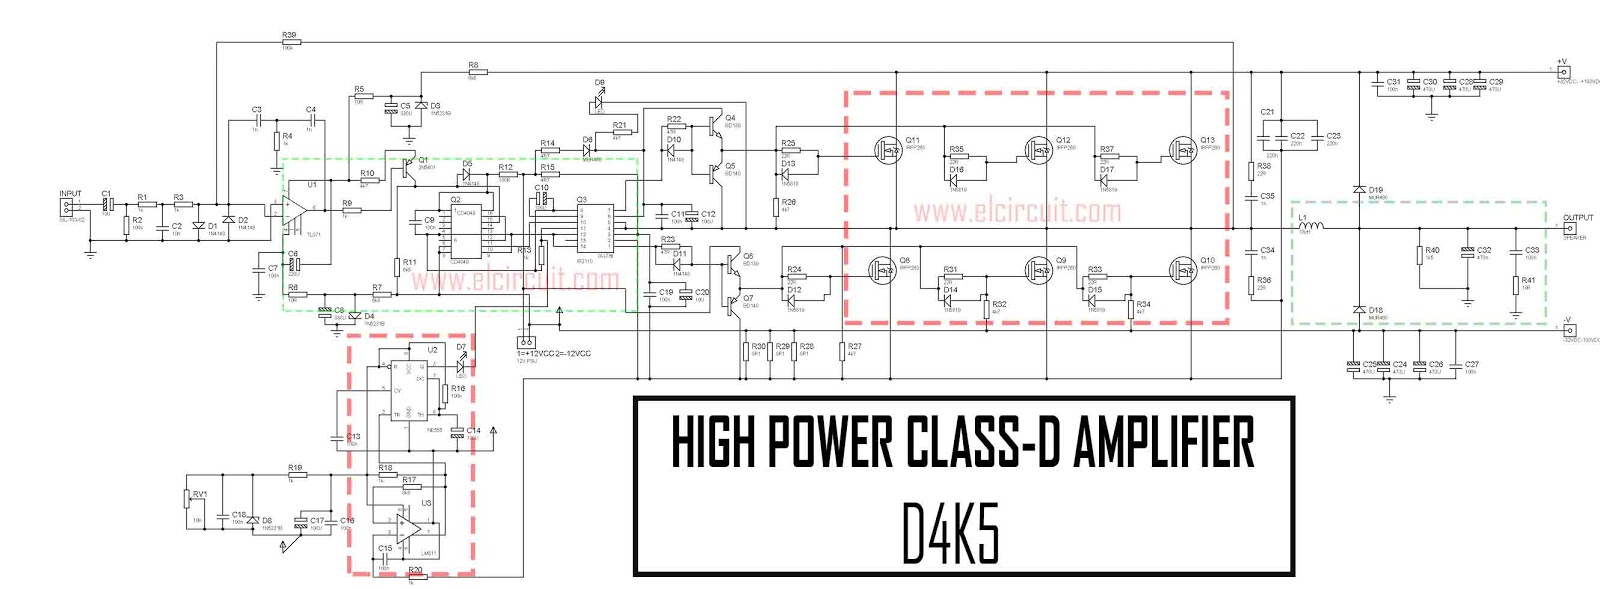 hight resolution of power amplifier class d d4k5 4500w circuit diagram